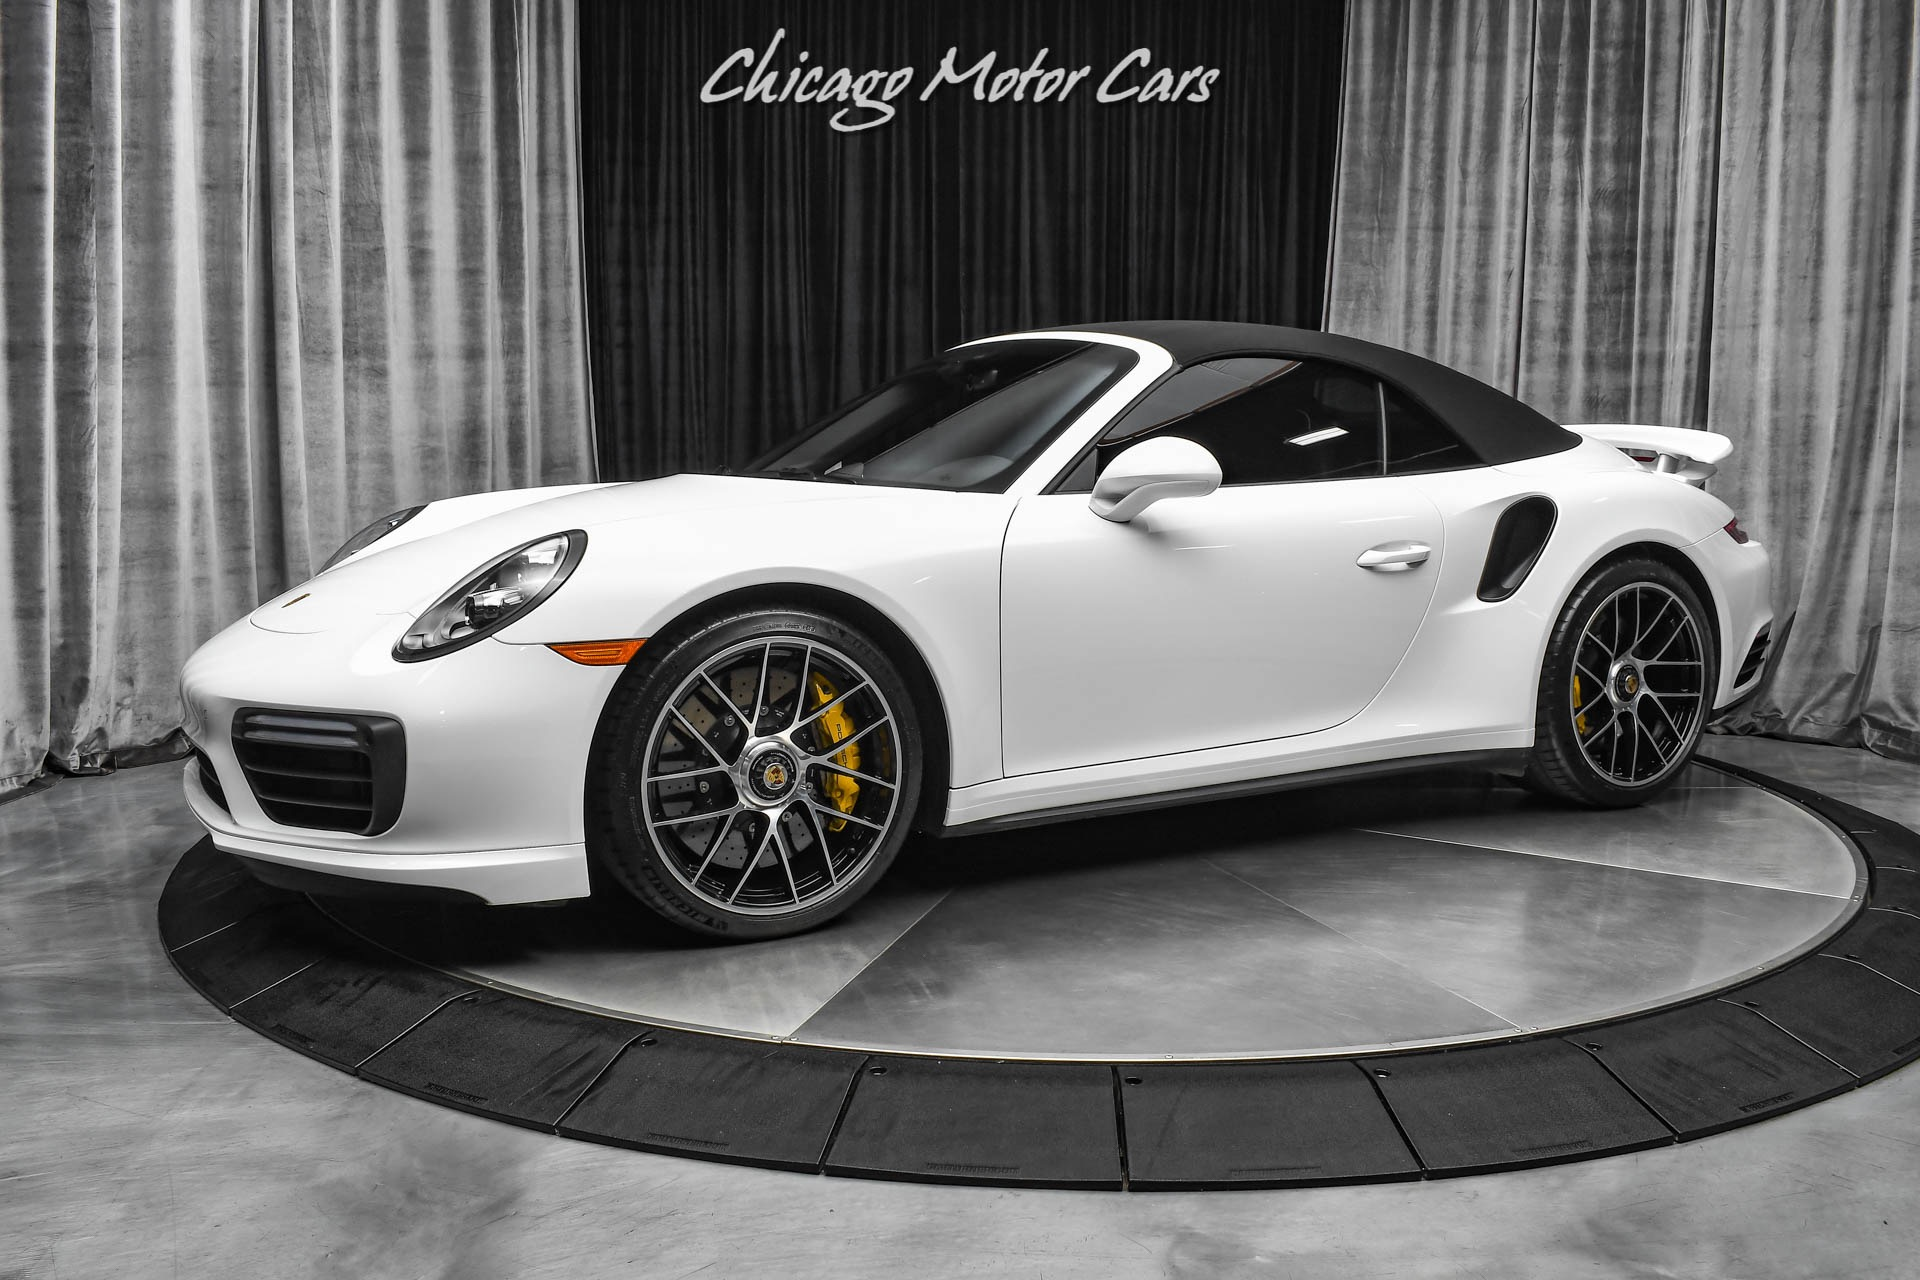 Used-2019-Porsche-911-Turbo-S-215kMSRP-Burmester-Sound-Front-Axle-Lift-4100-Miles